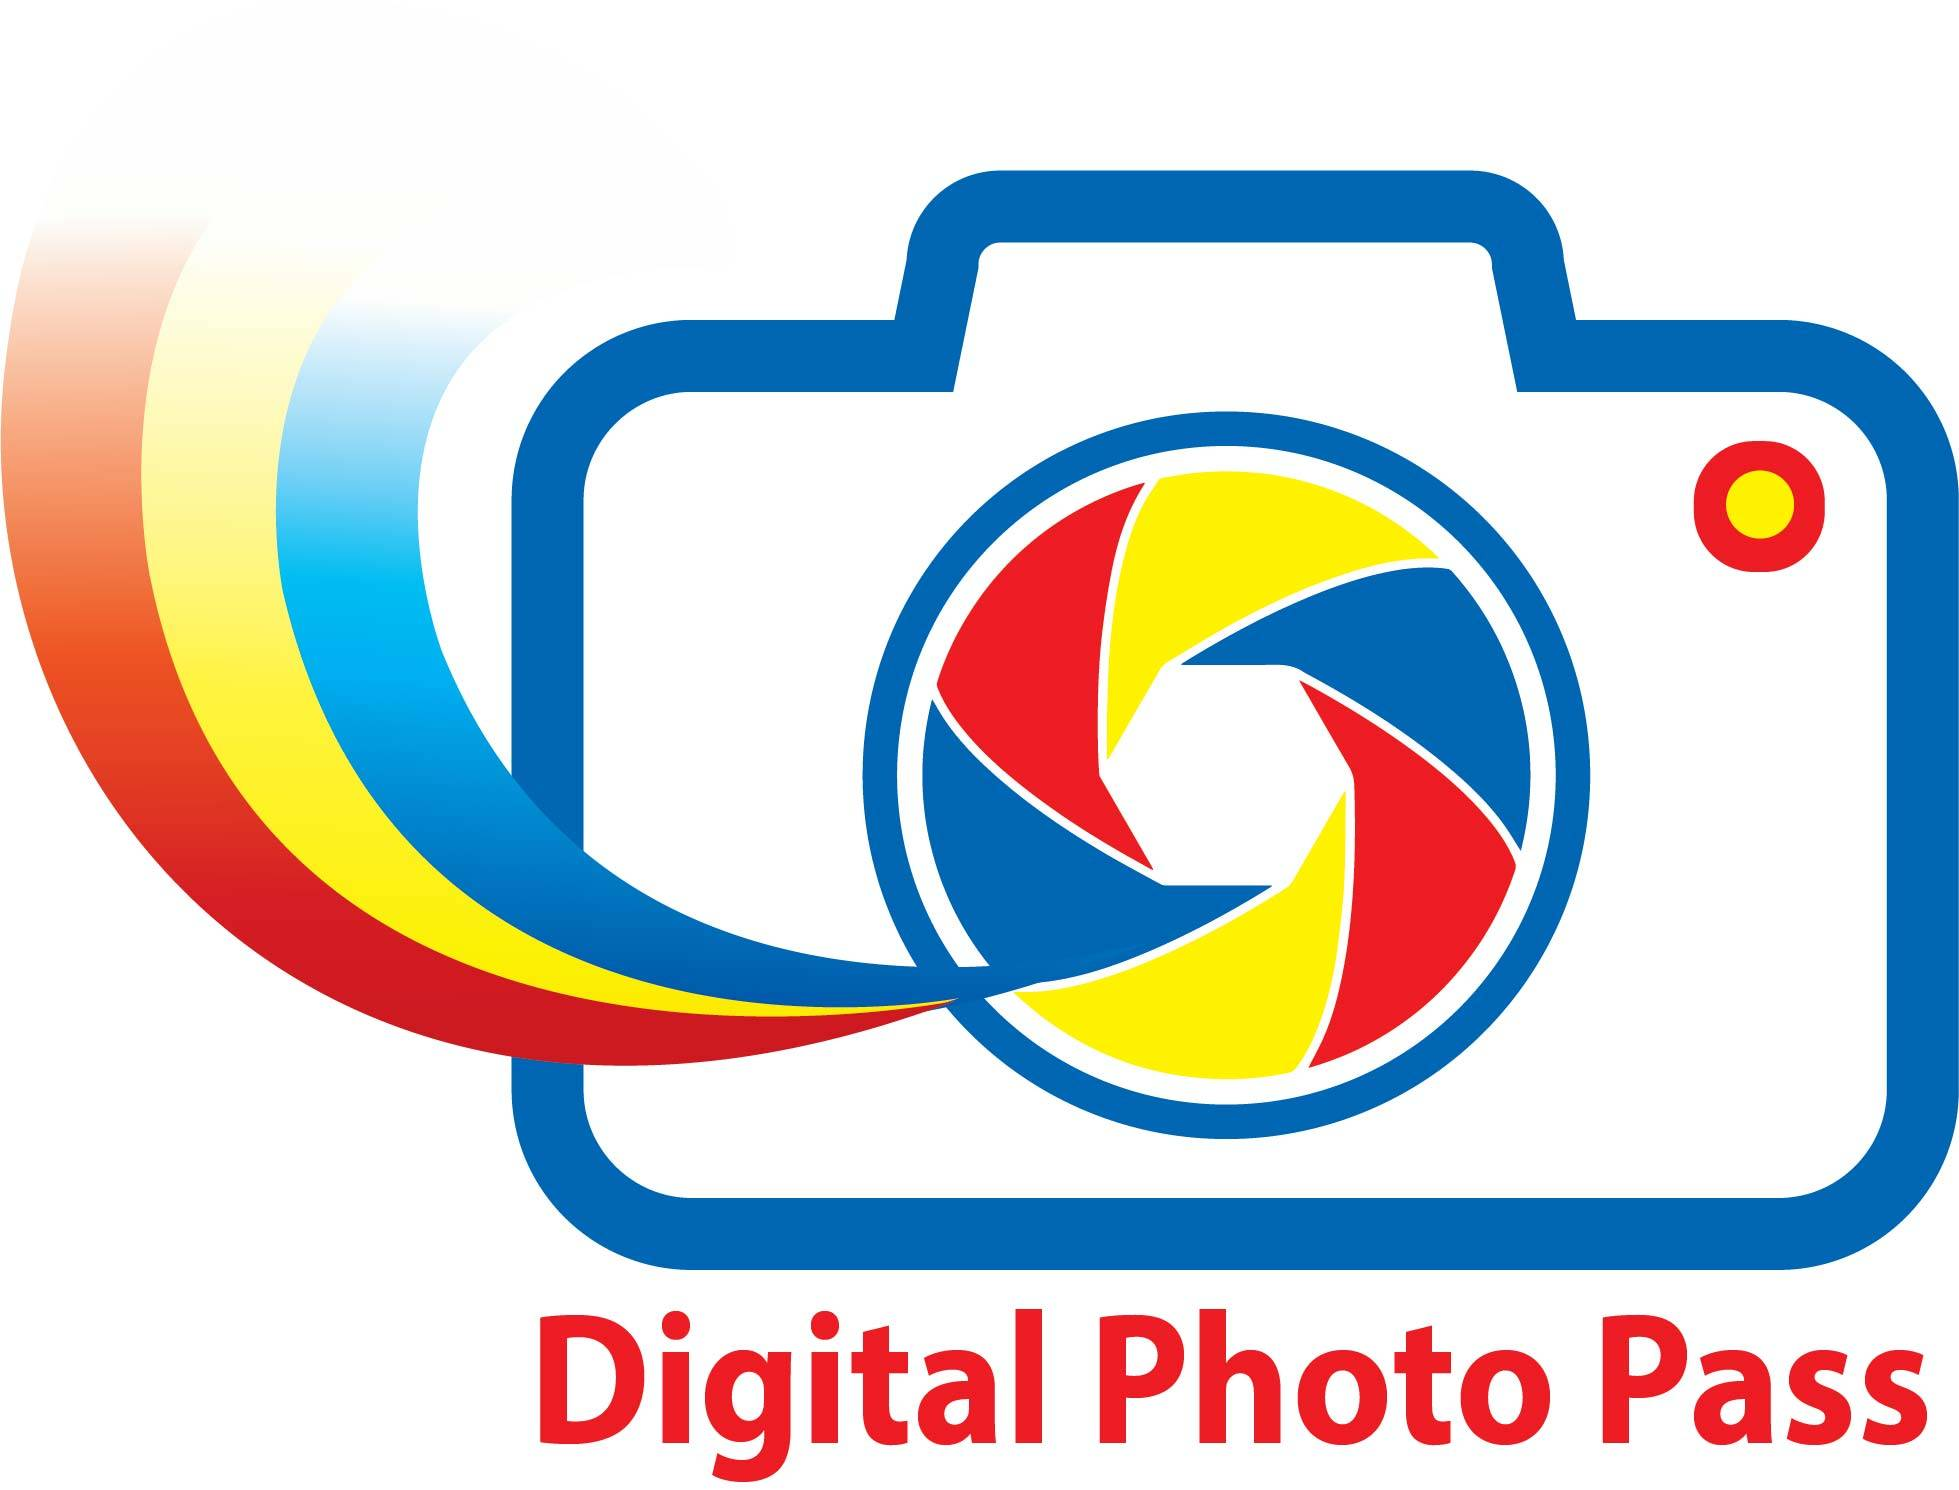 Digital Photo Pass